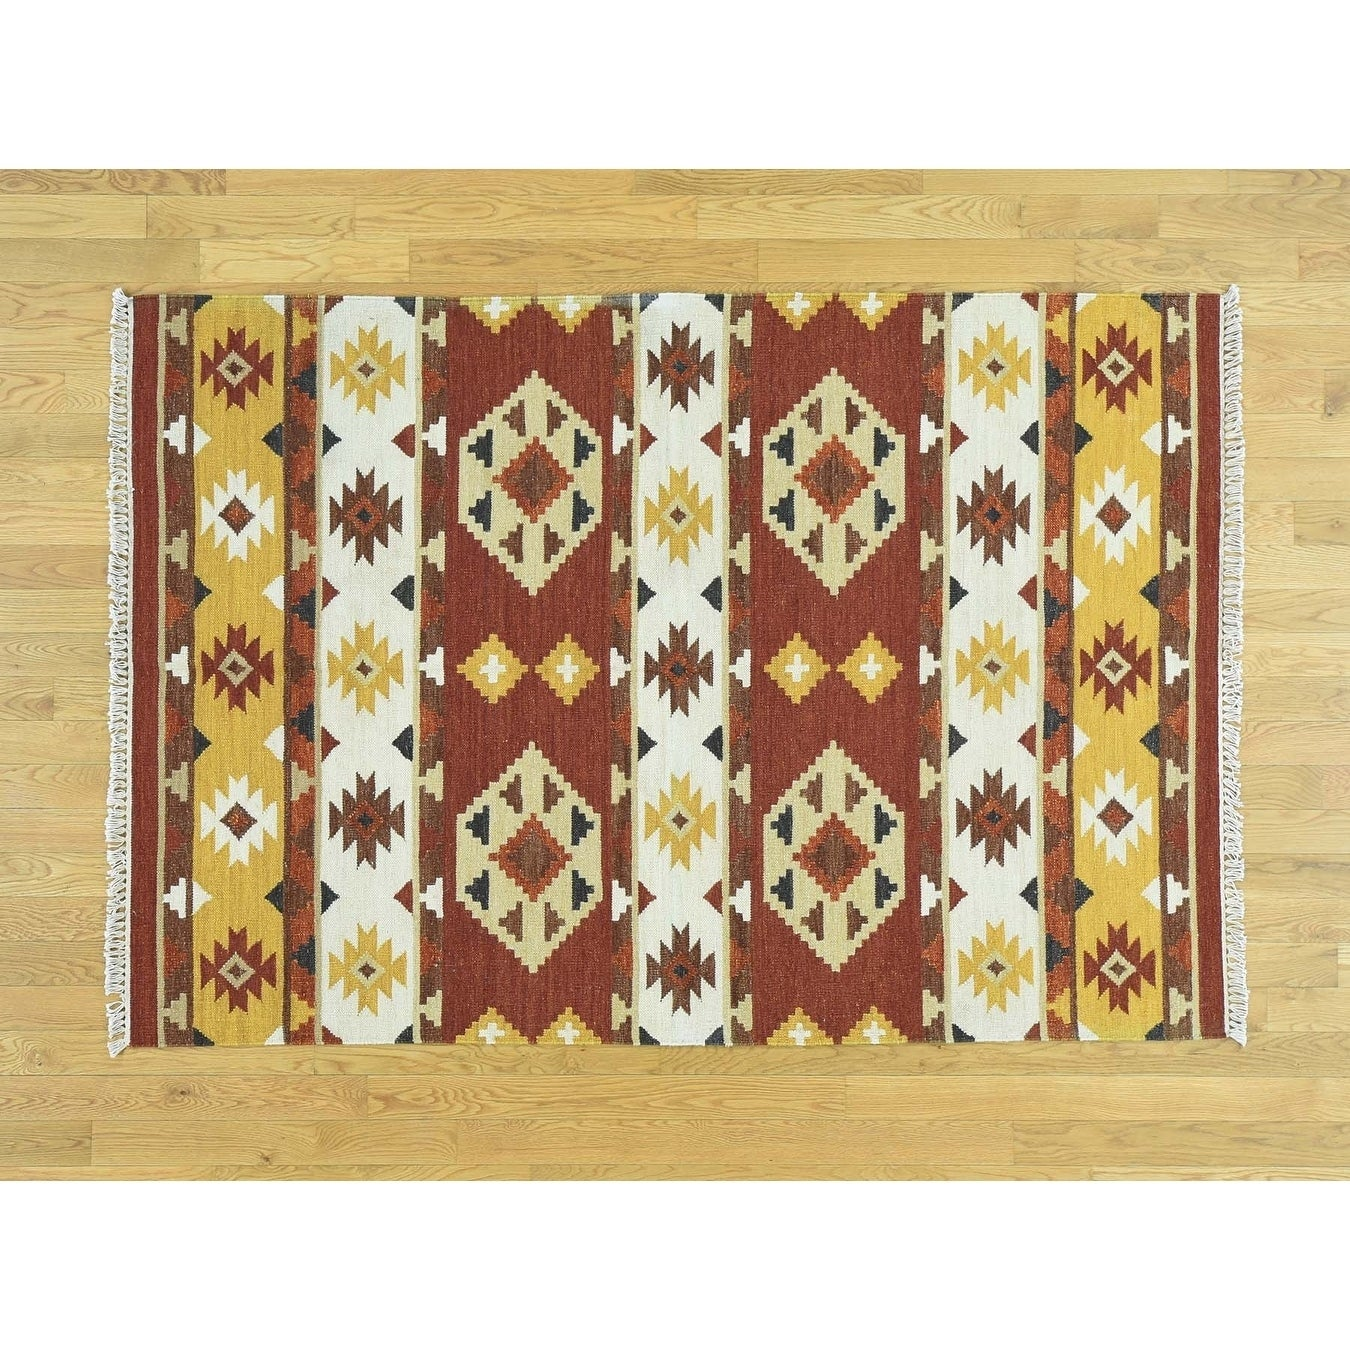 Hand Knotted Multicolored Flat Weave with Wool Oriental Rug - 48 x 69